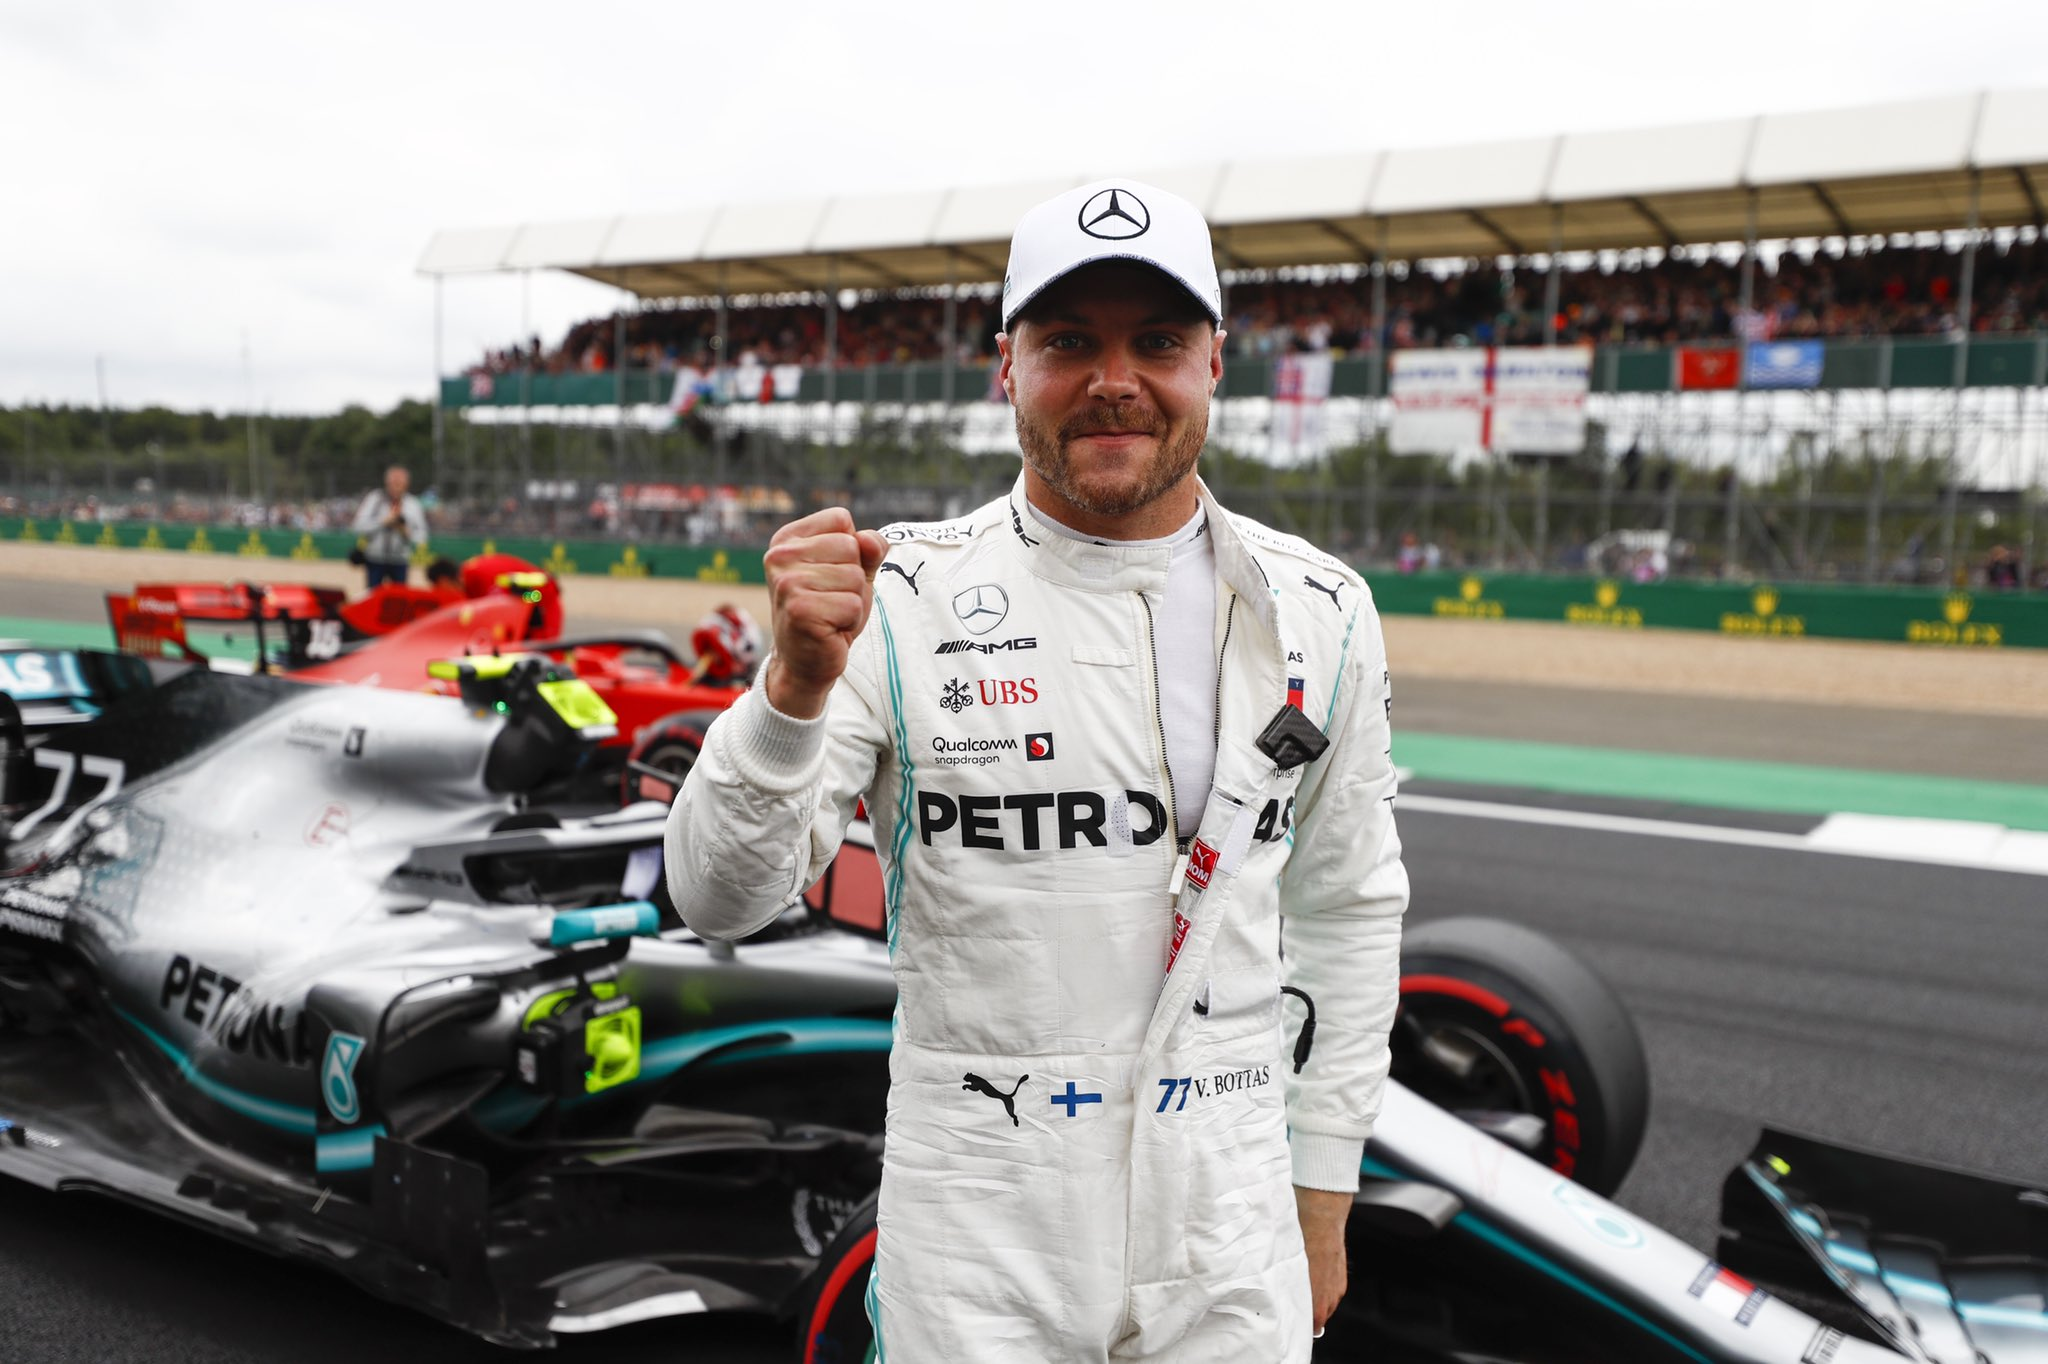 Valtteri Bottas, Mercedes, pole, British GP 2019, Silverstone